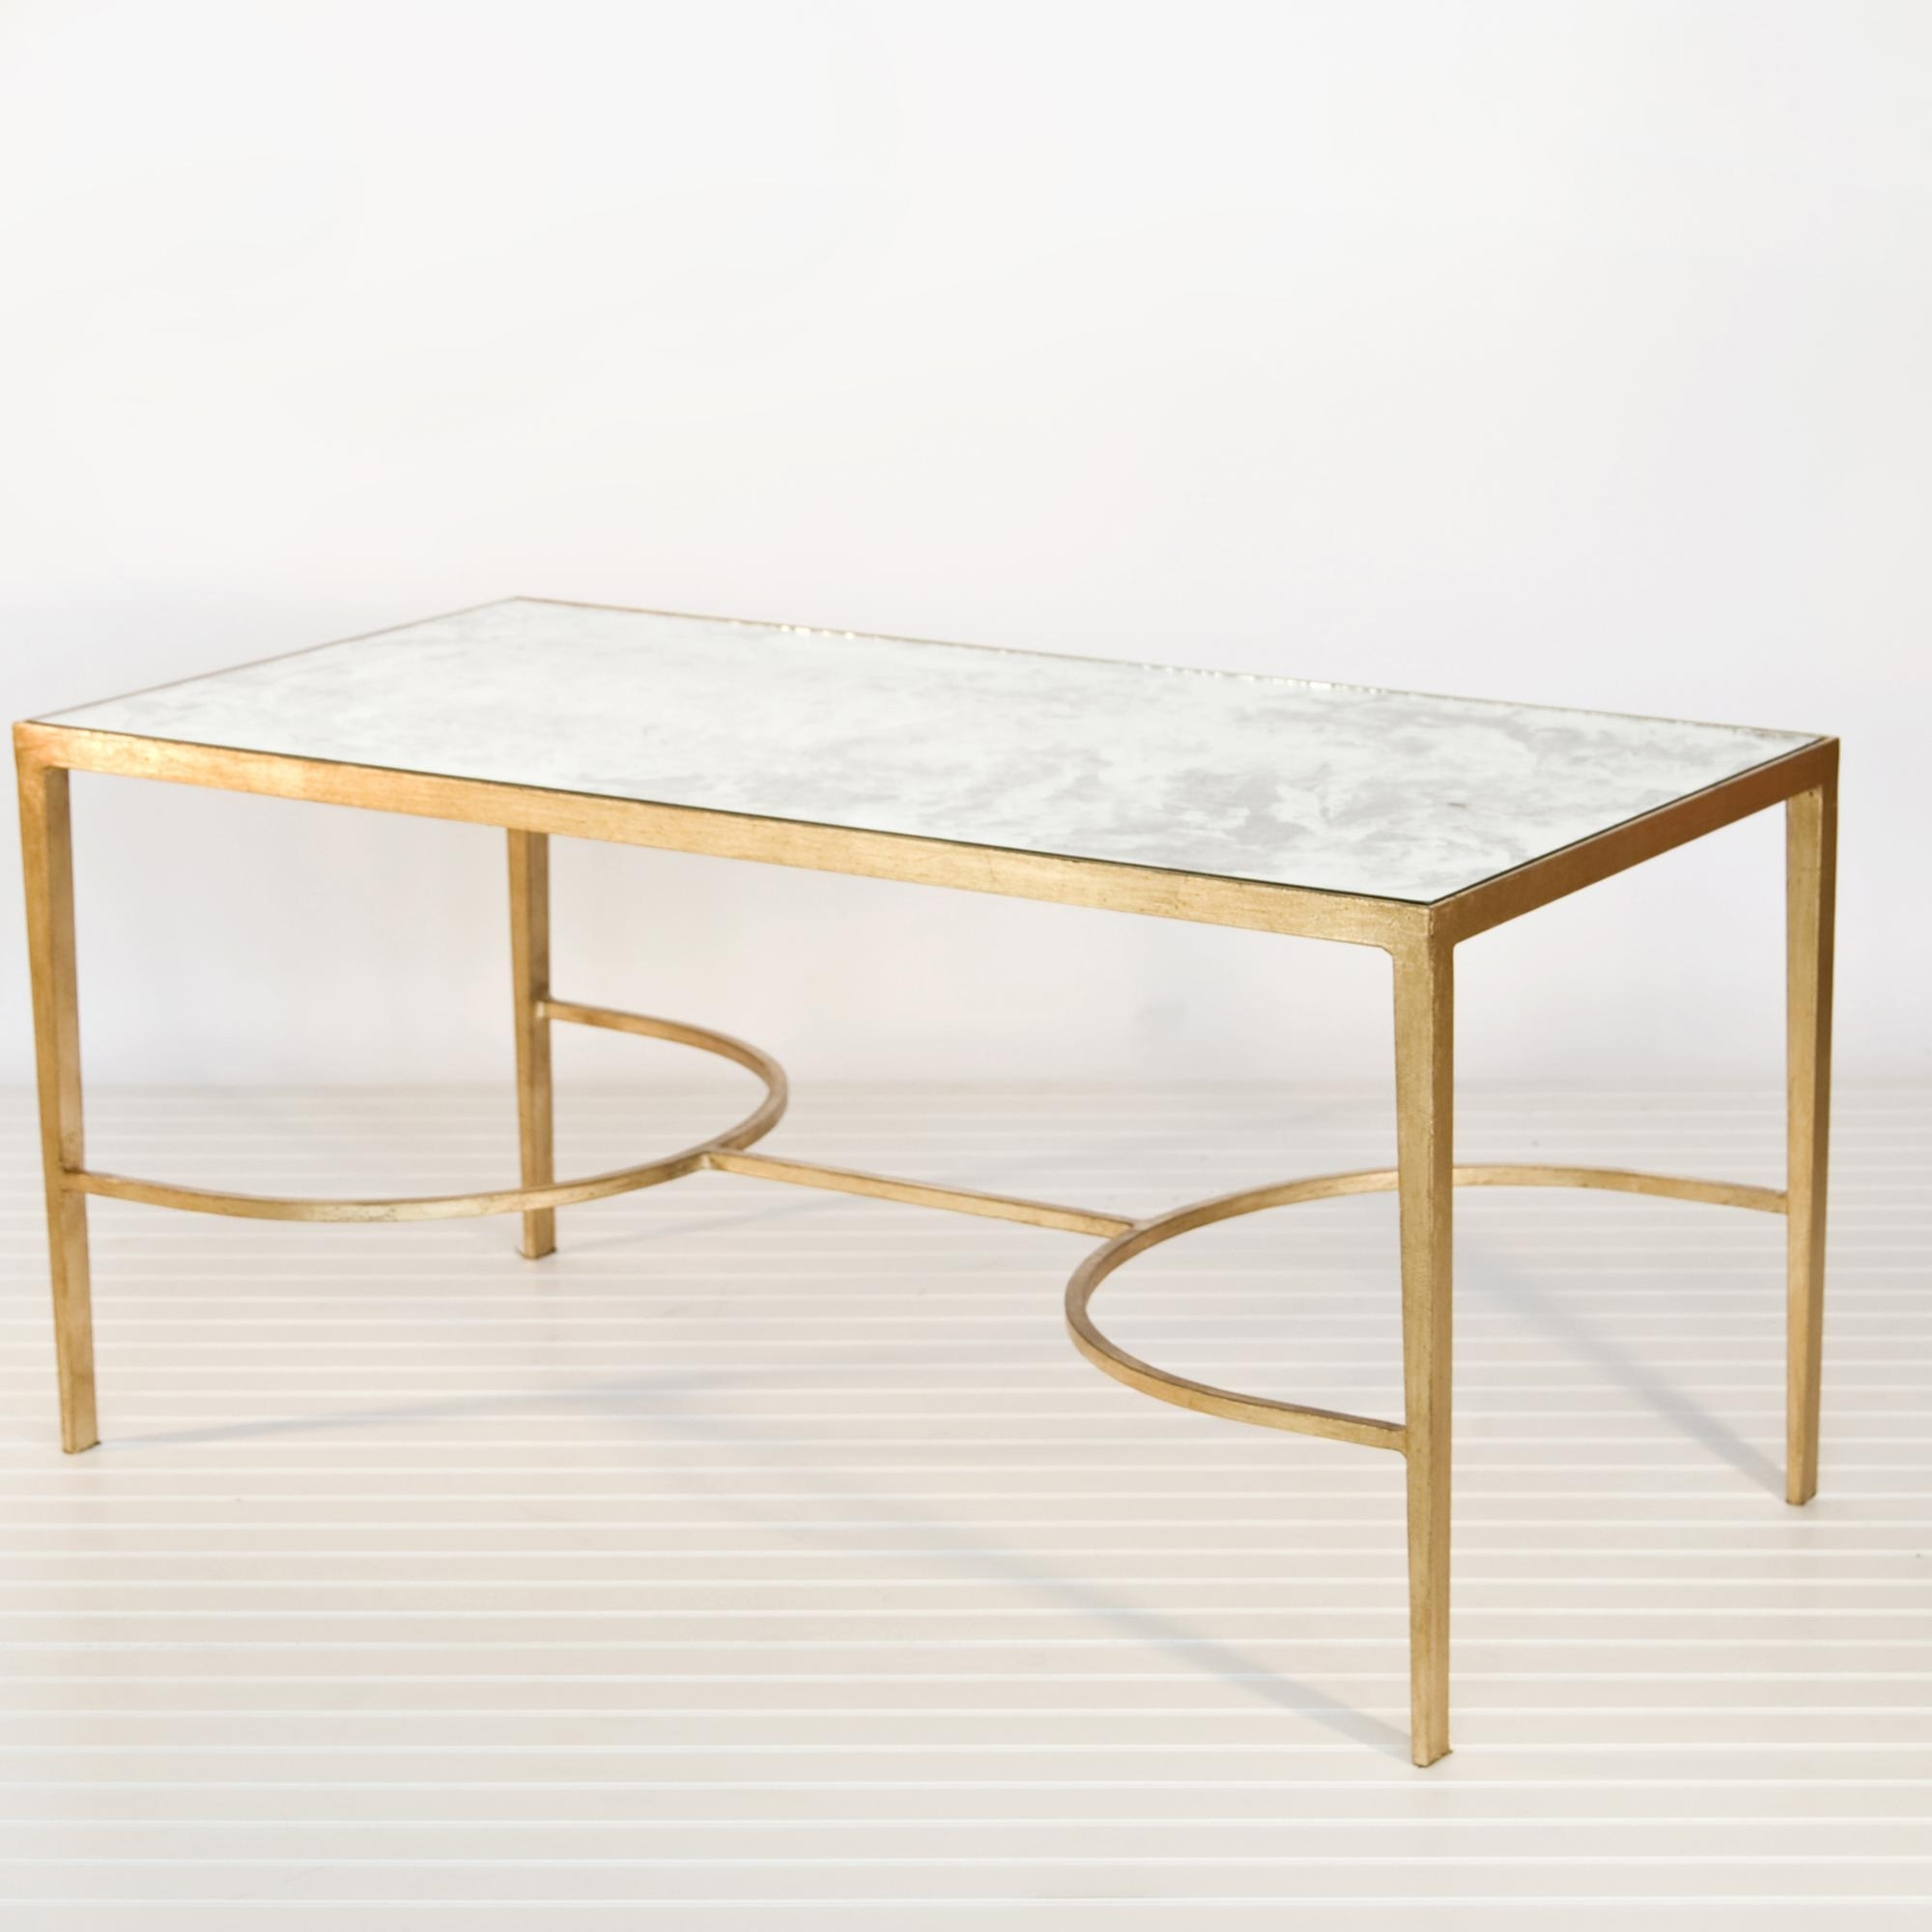 Nice Glass And Gold Coffee Table With Coffee Table Elegant Gold With Regard To Rectangular Brass Finish And Glass Coffee Tables (Photo 27 of 30)